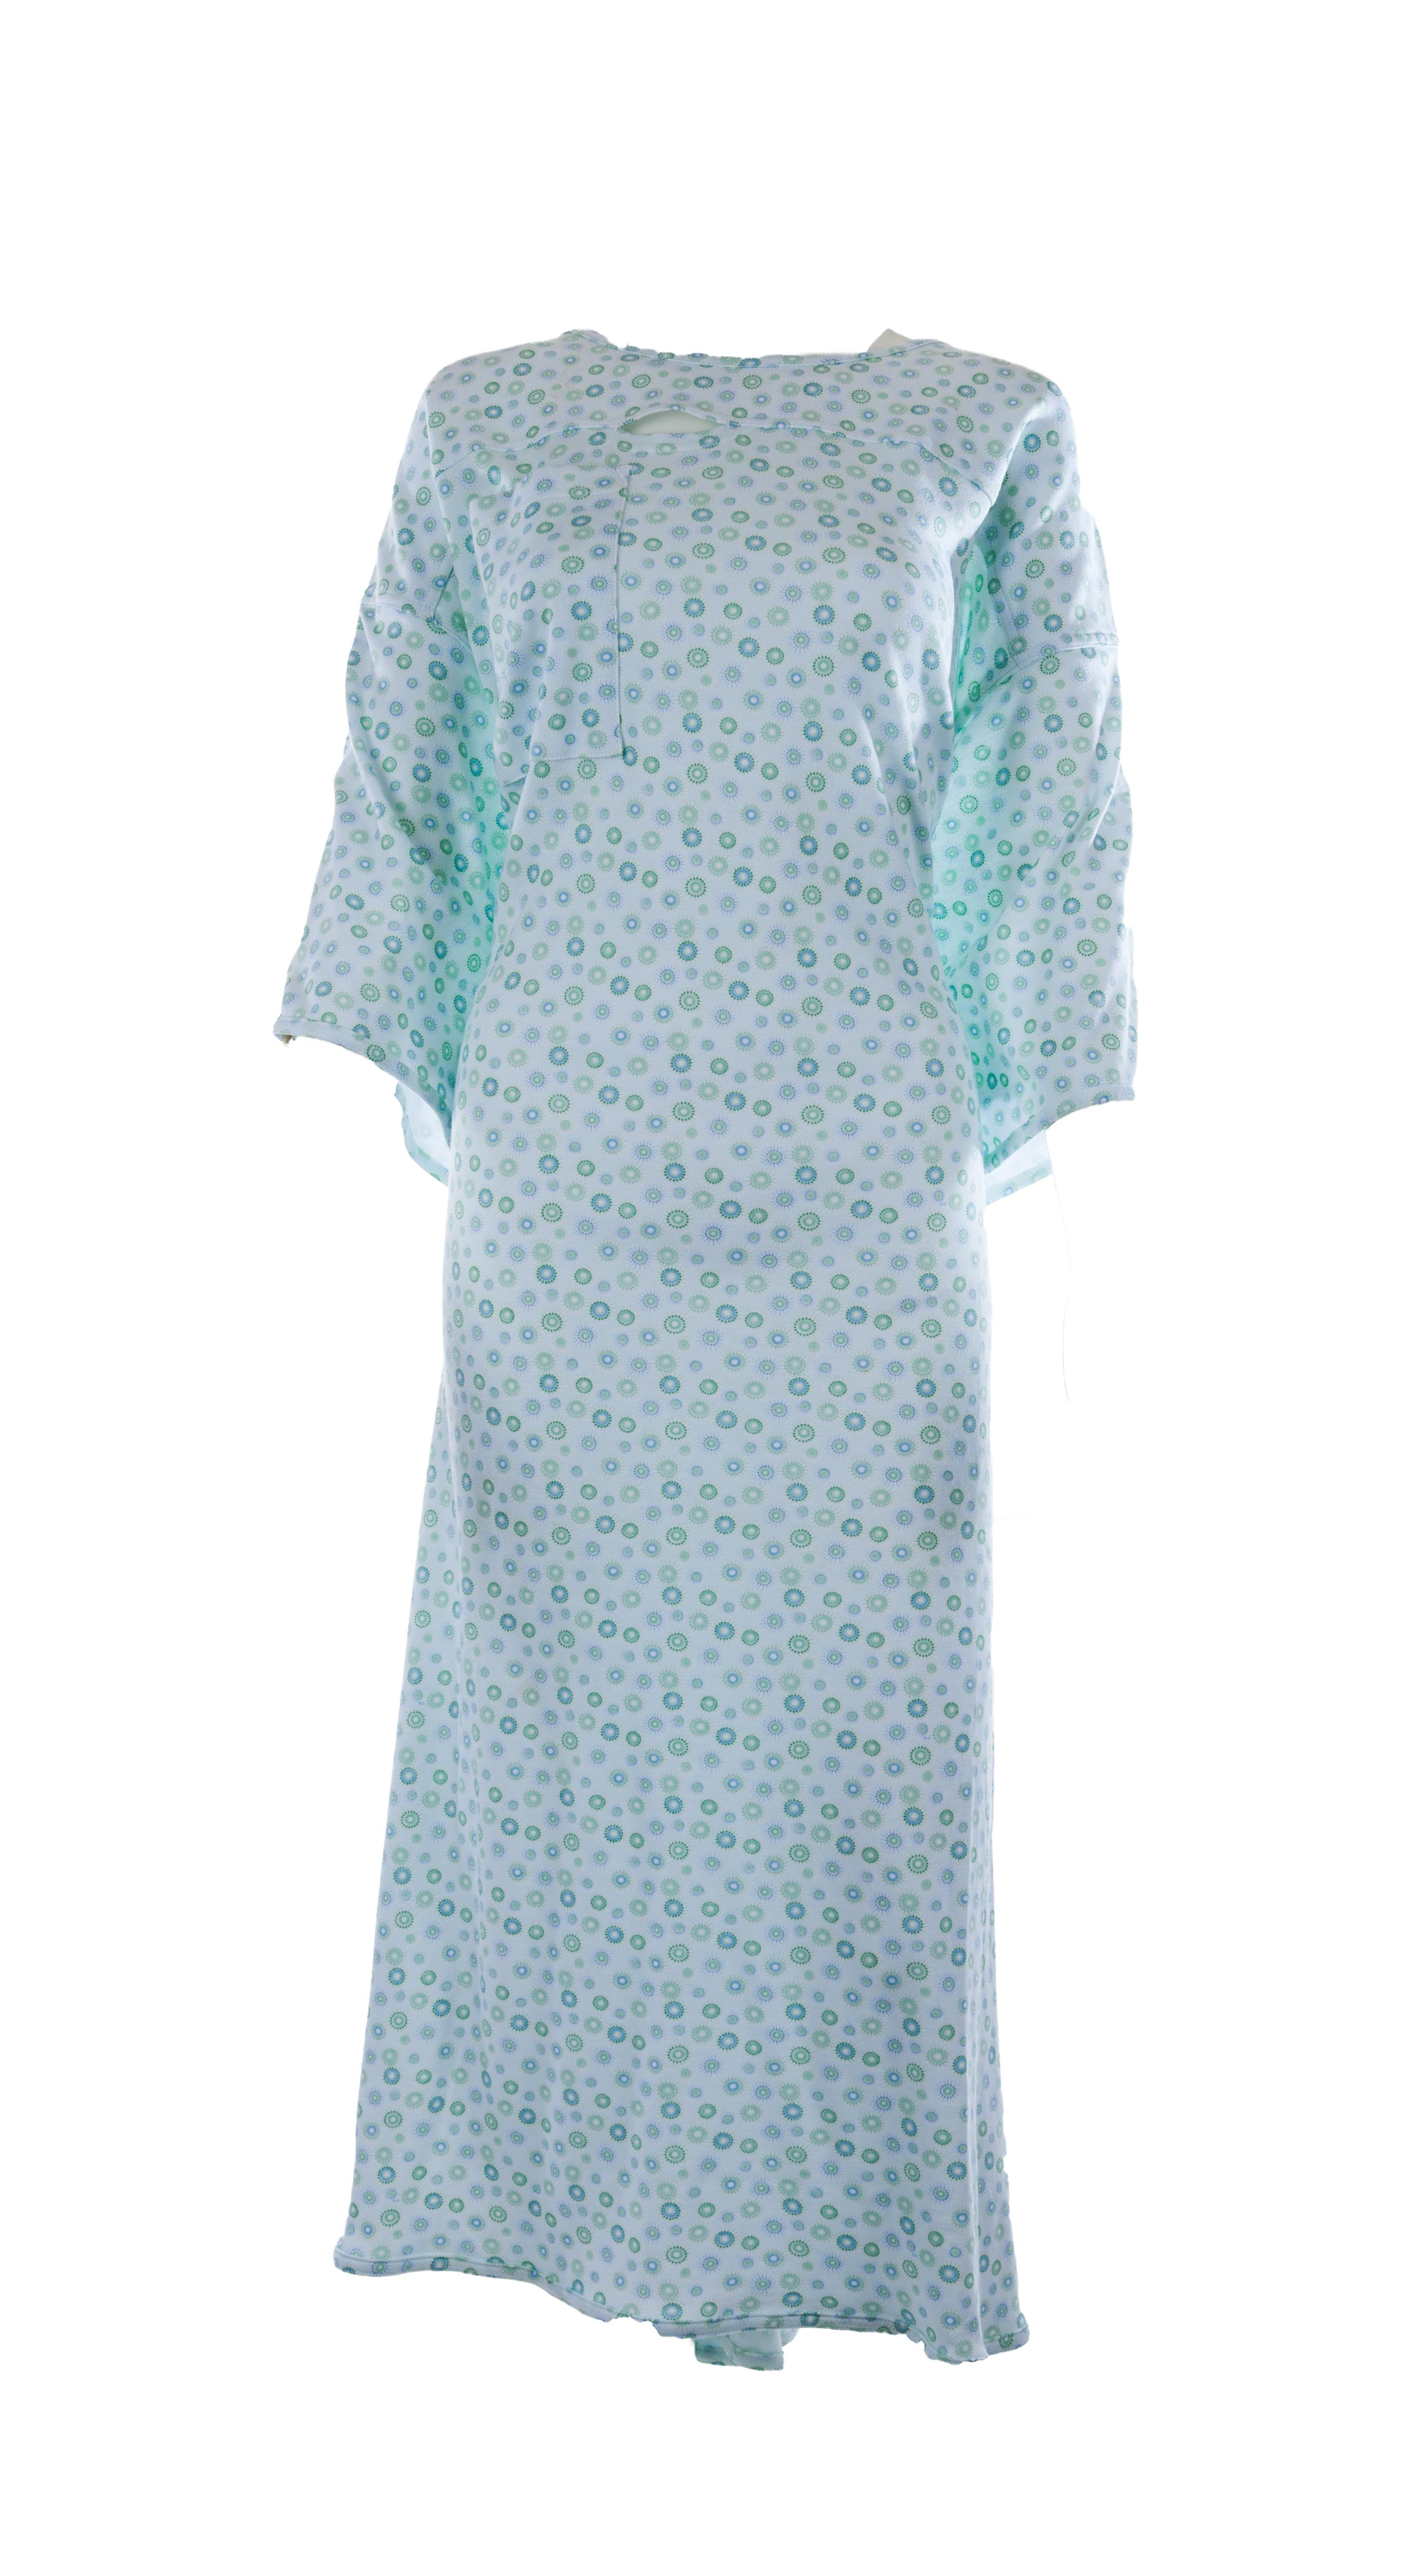 All Hospital Gowns